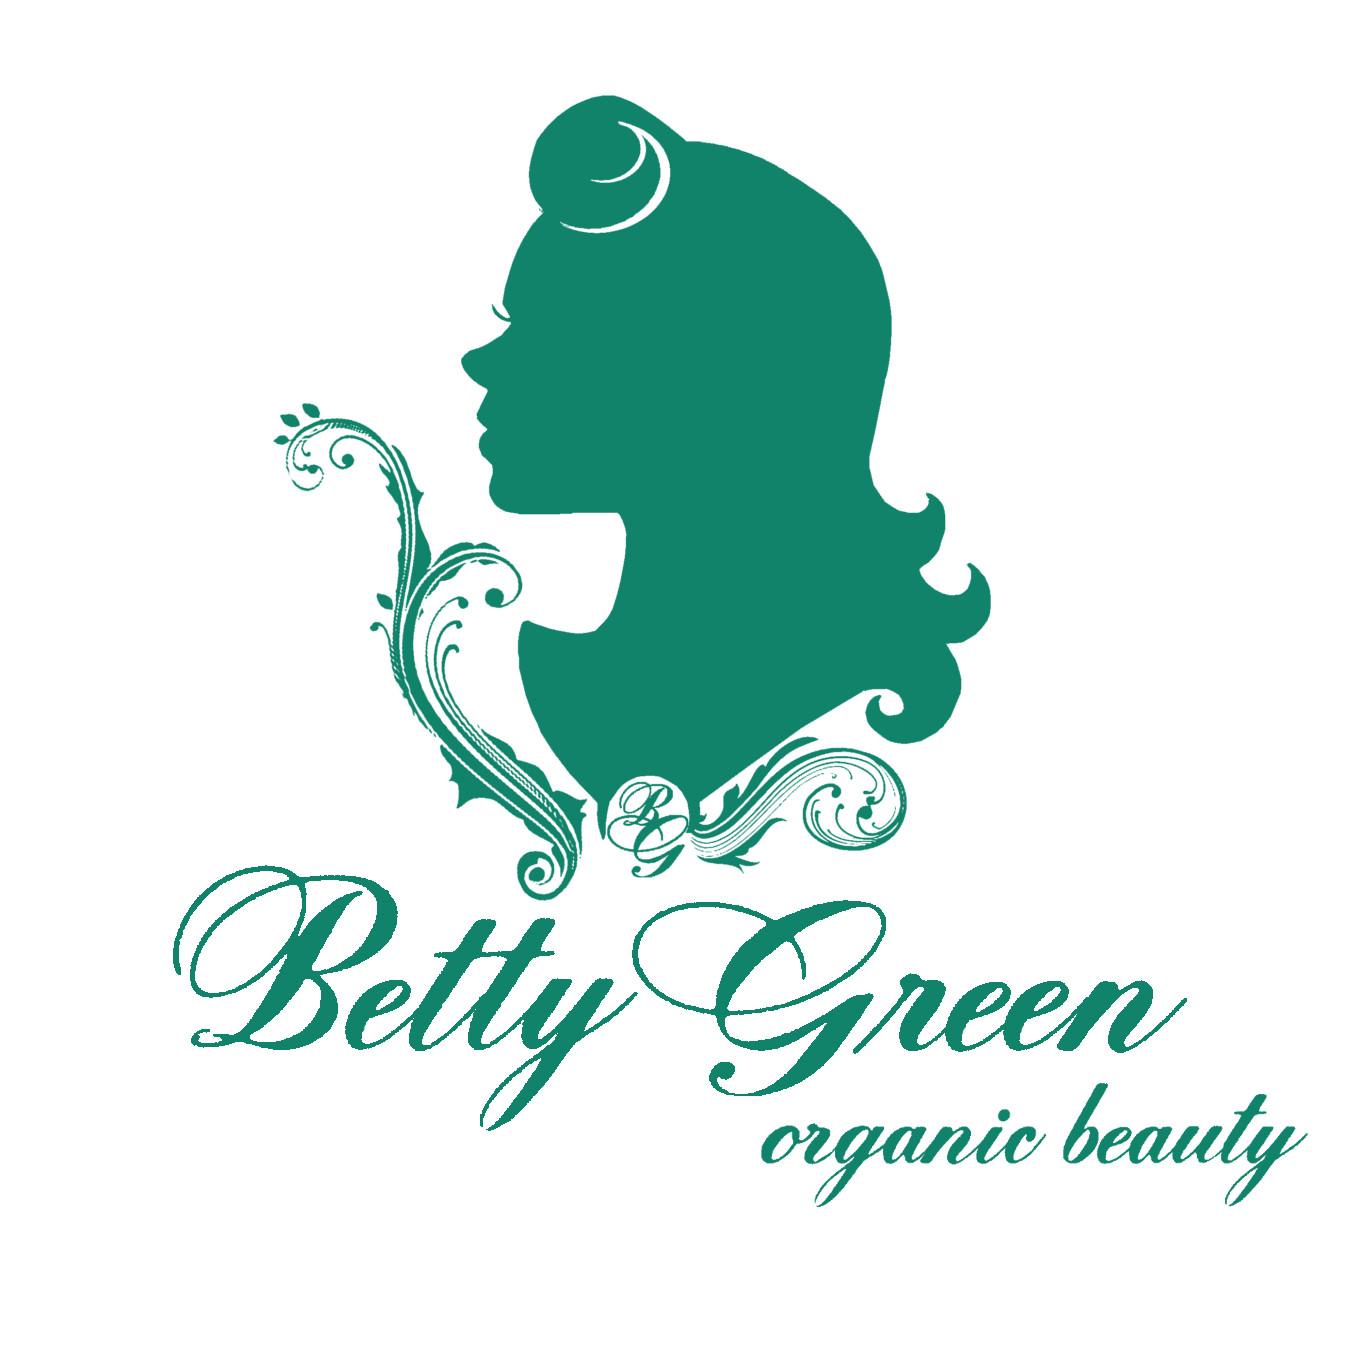 bettygreenlogo.png